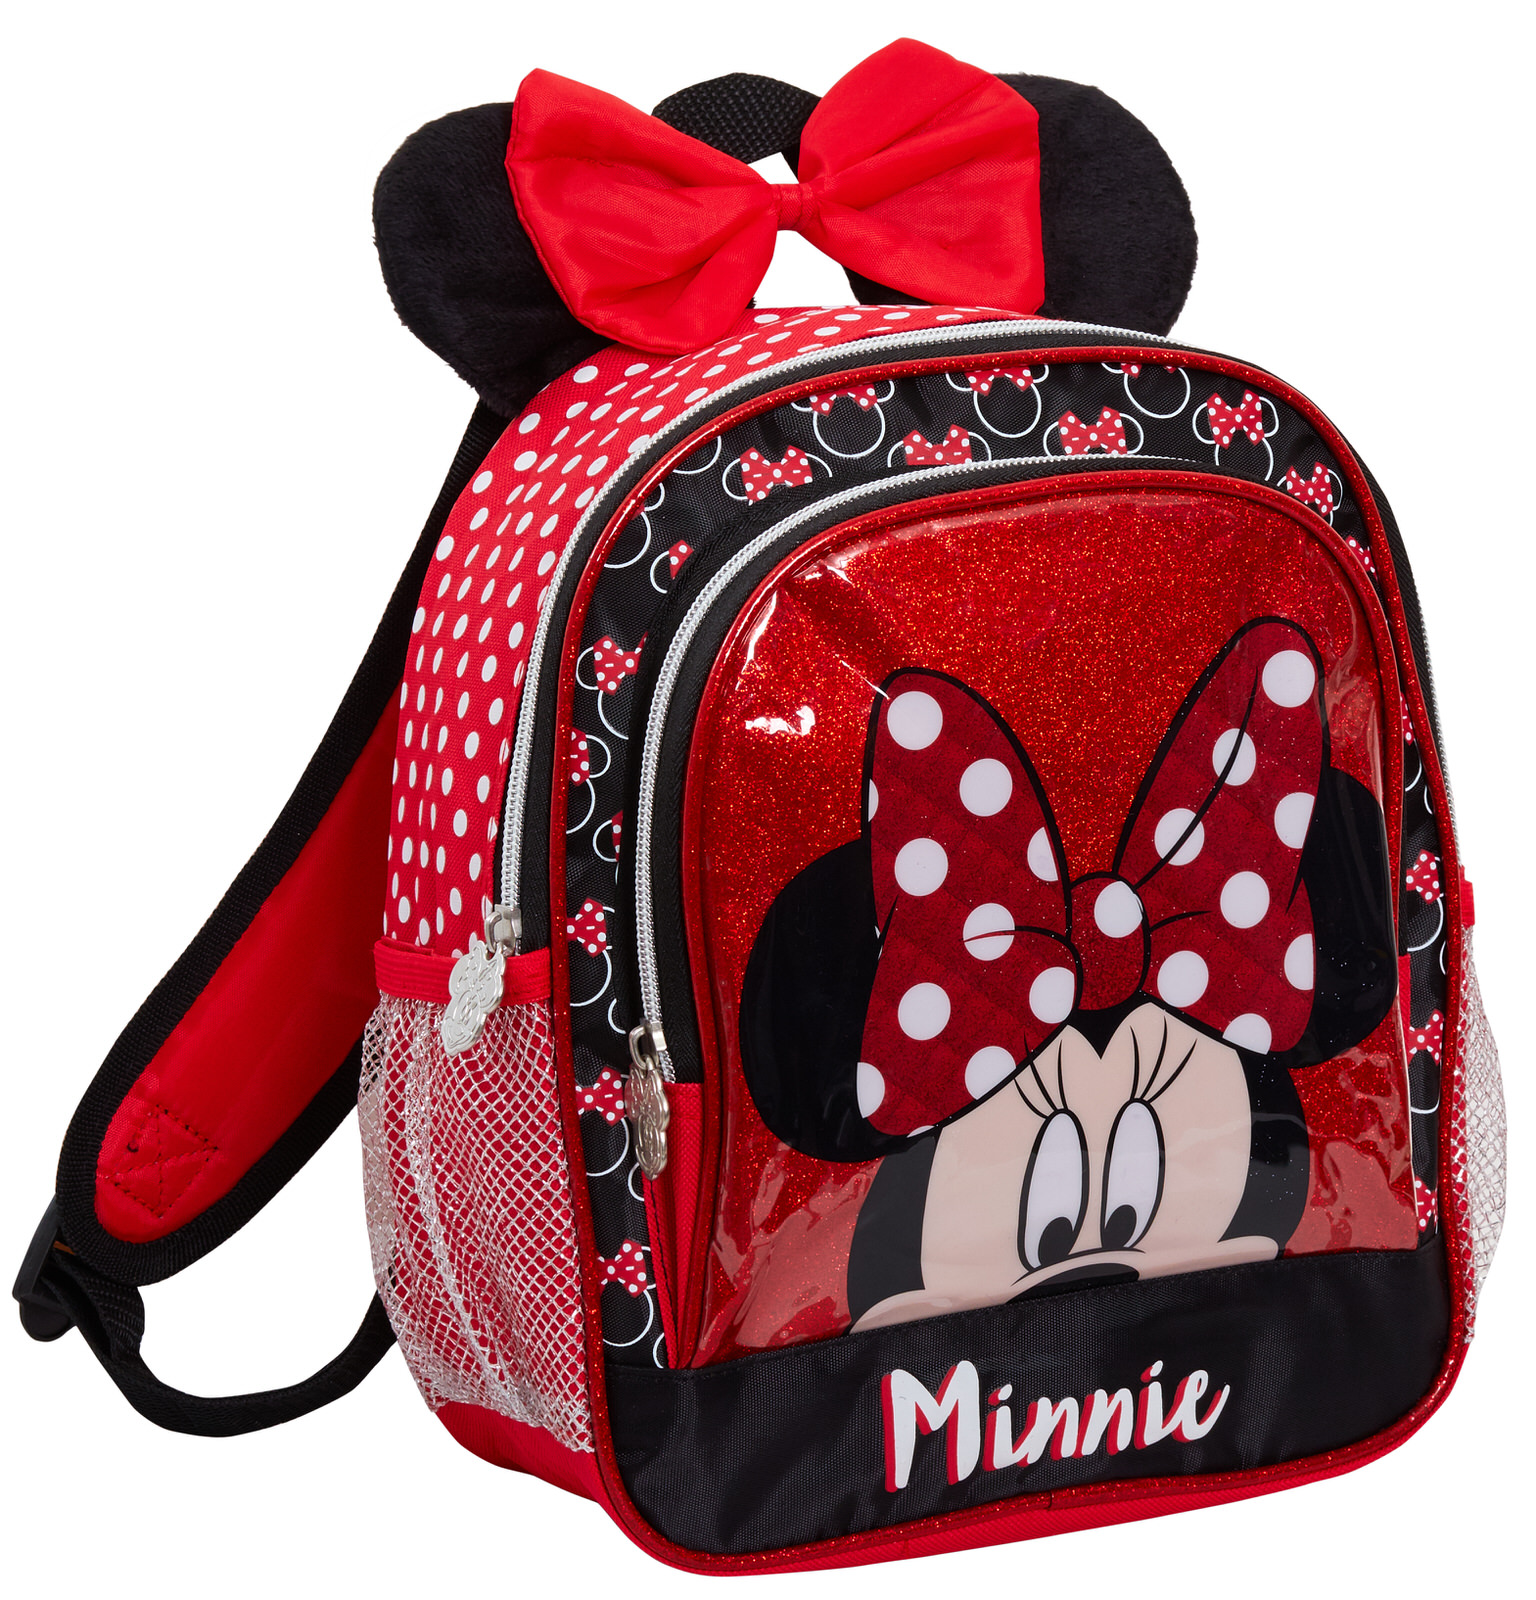 Details about Disney Minnie Mouse Plush 3D Ears Bow Backpack Girls School Rucksack Lunch Bag